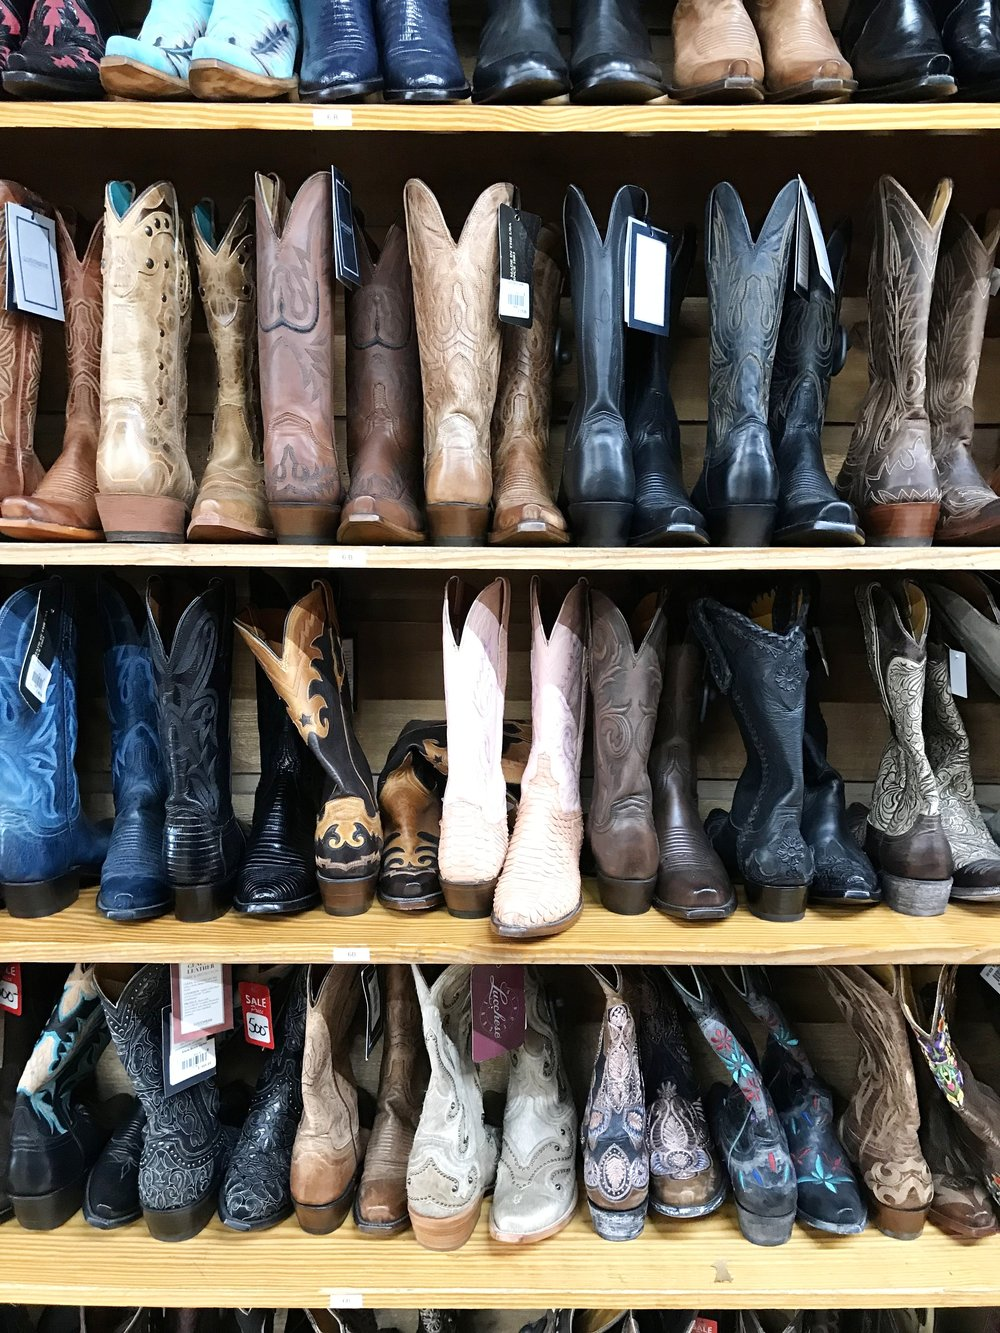 In another life, if I were Texan, those pink boots in the middle would be mine.